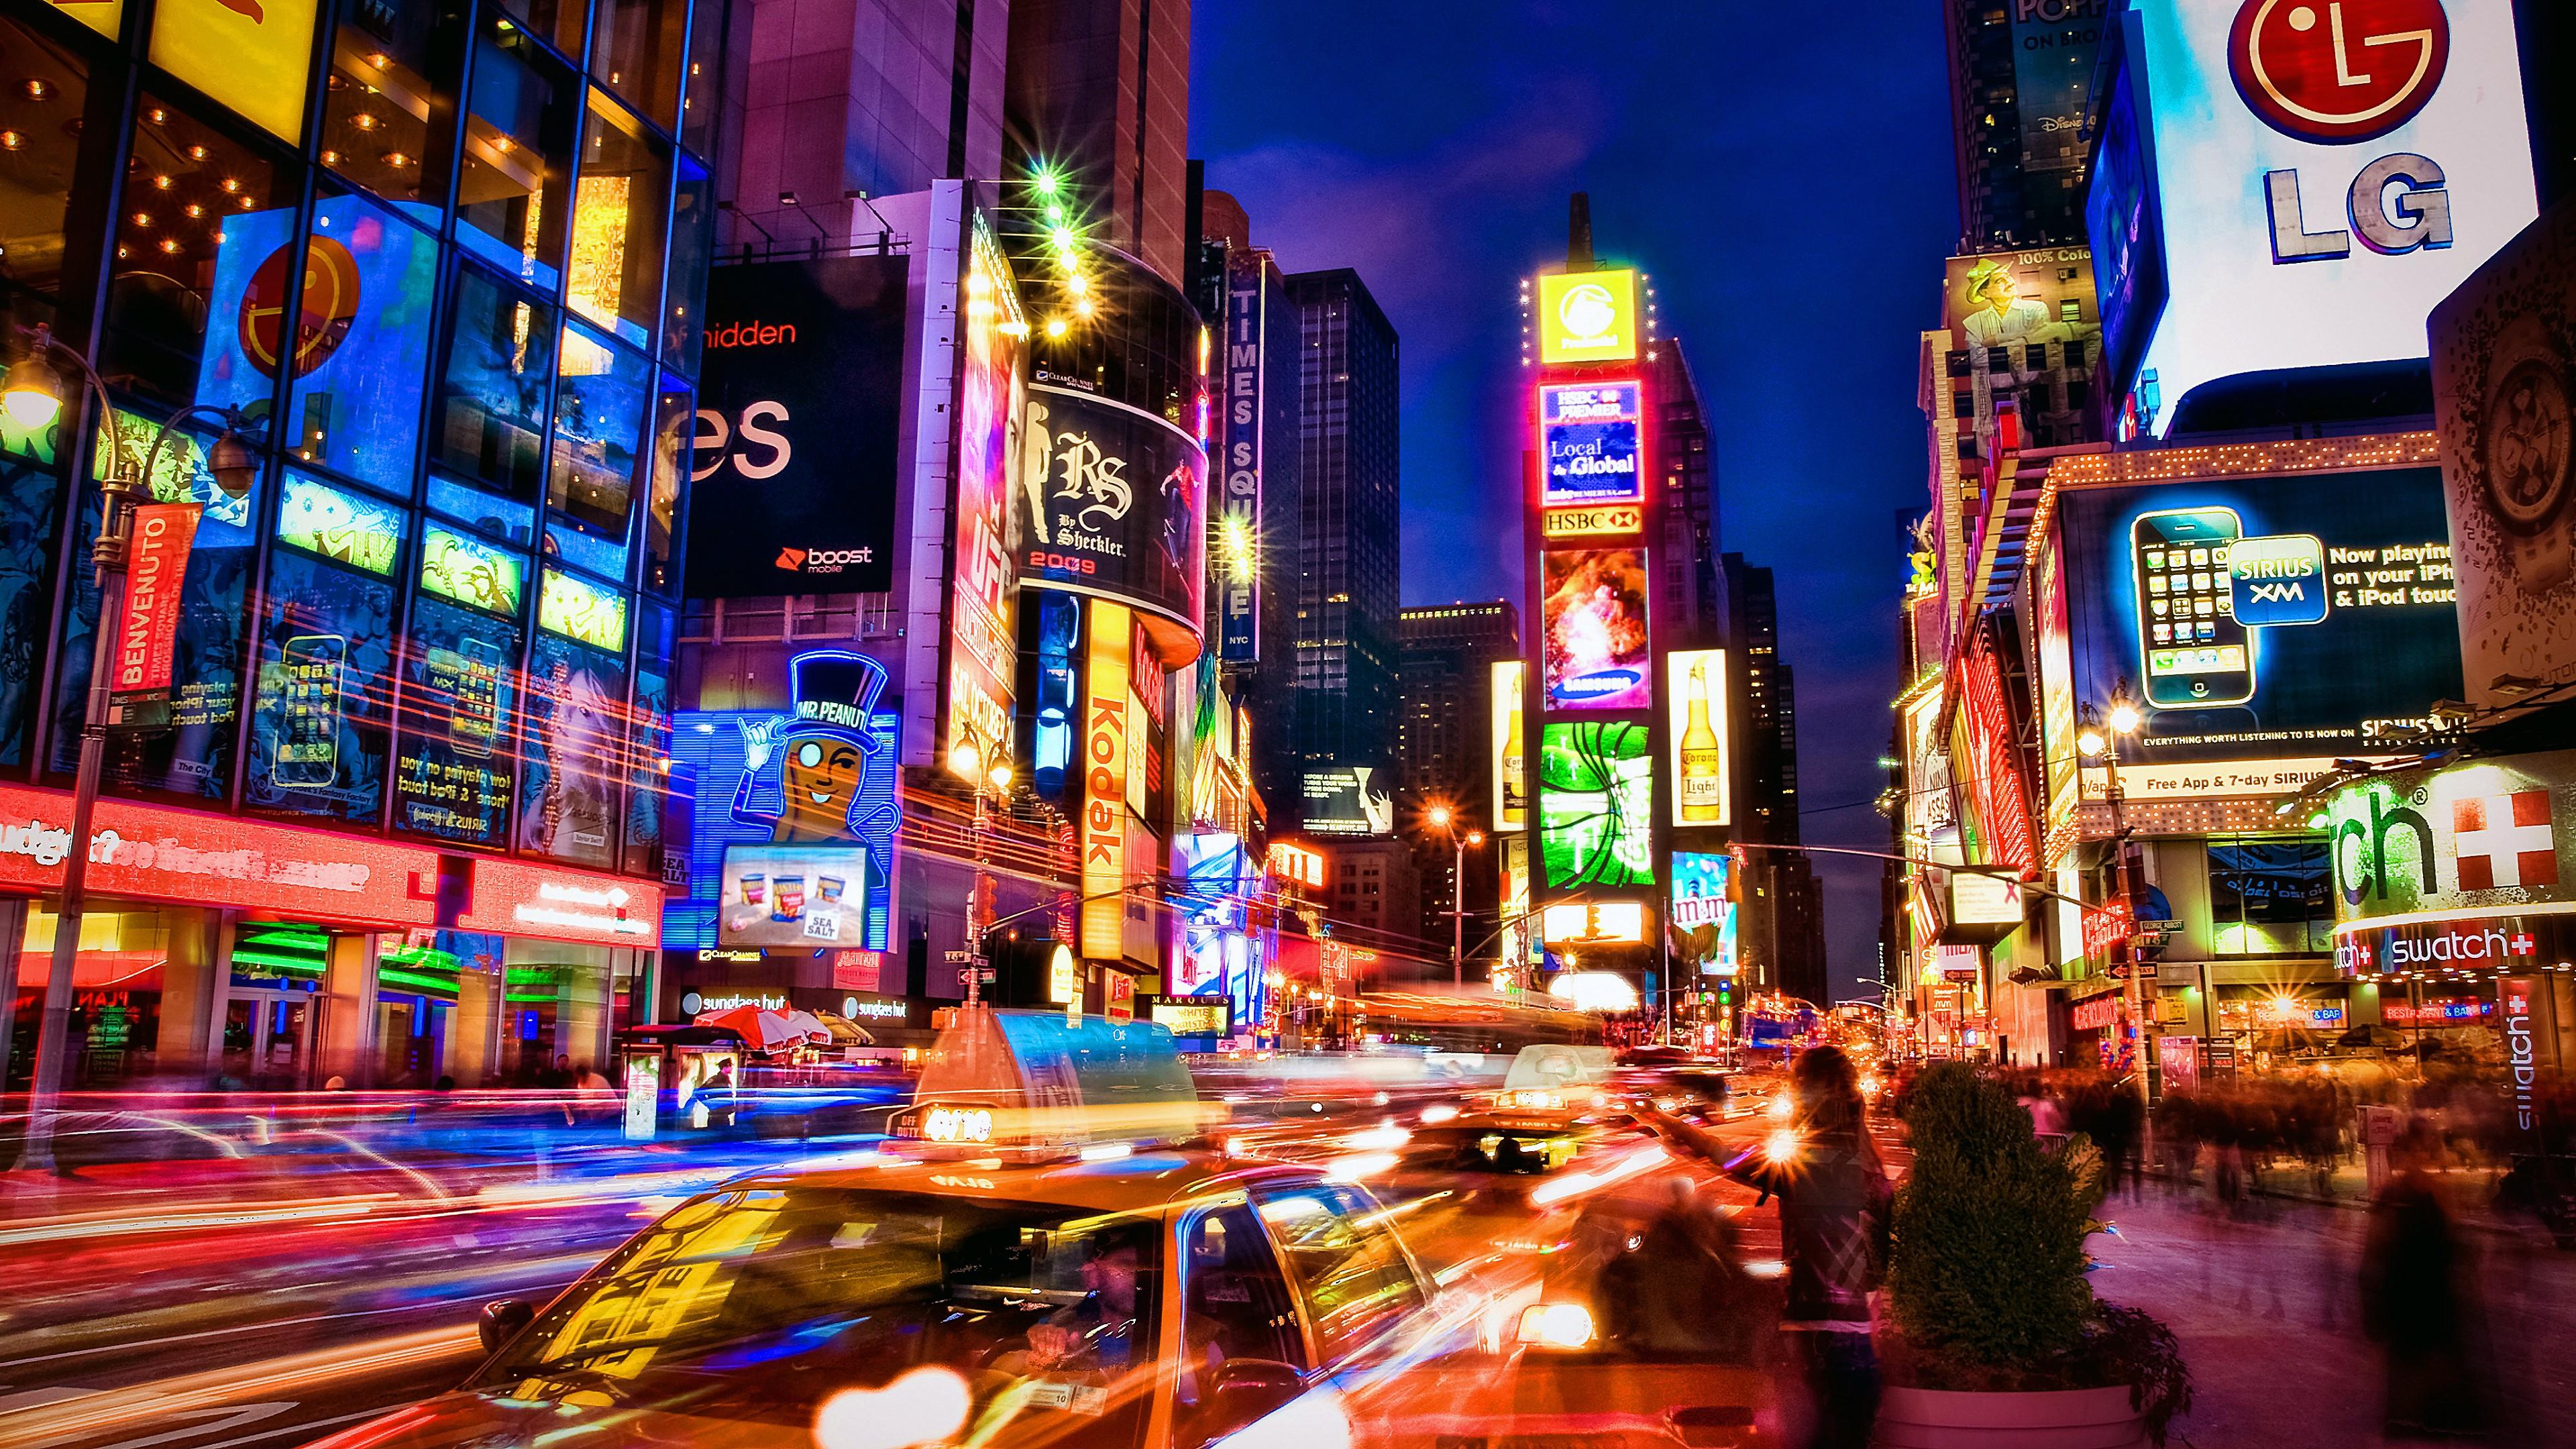 Times Square At Night Wallpapers Top Free Times Square At